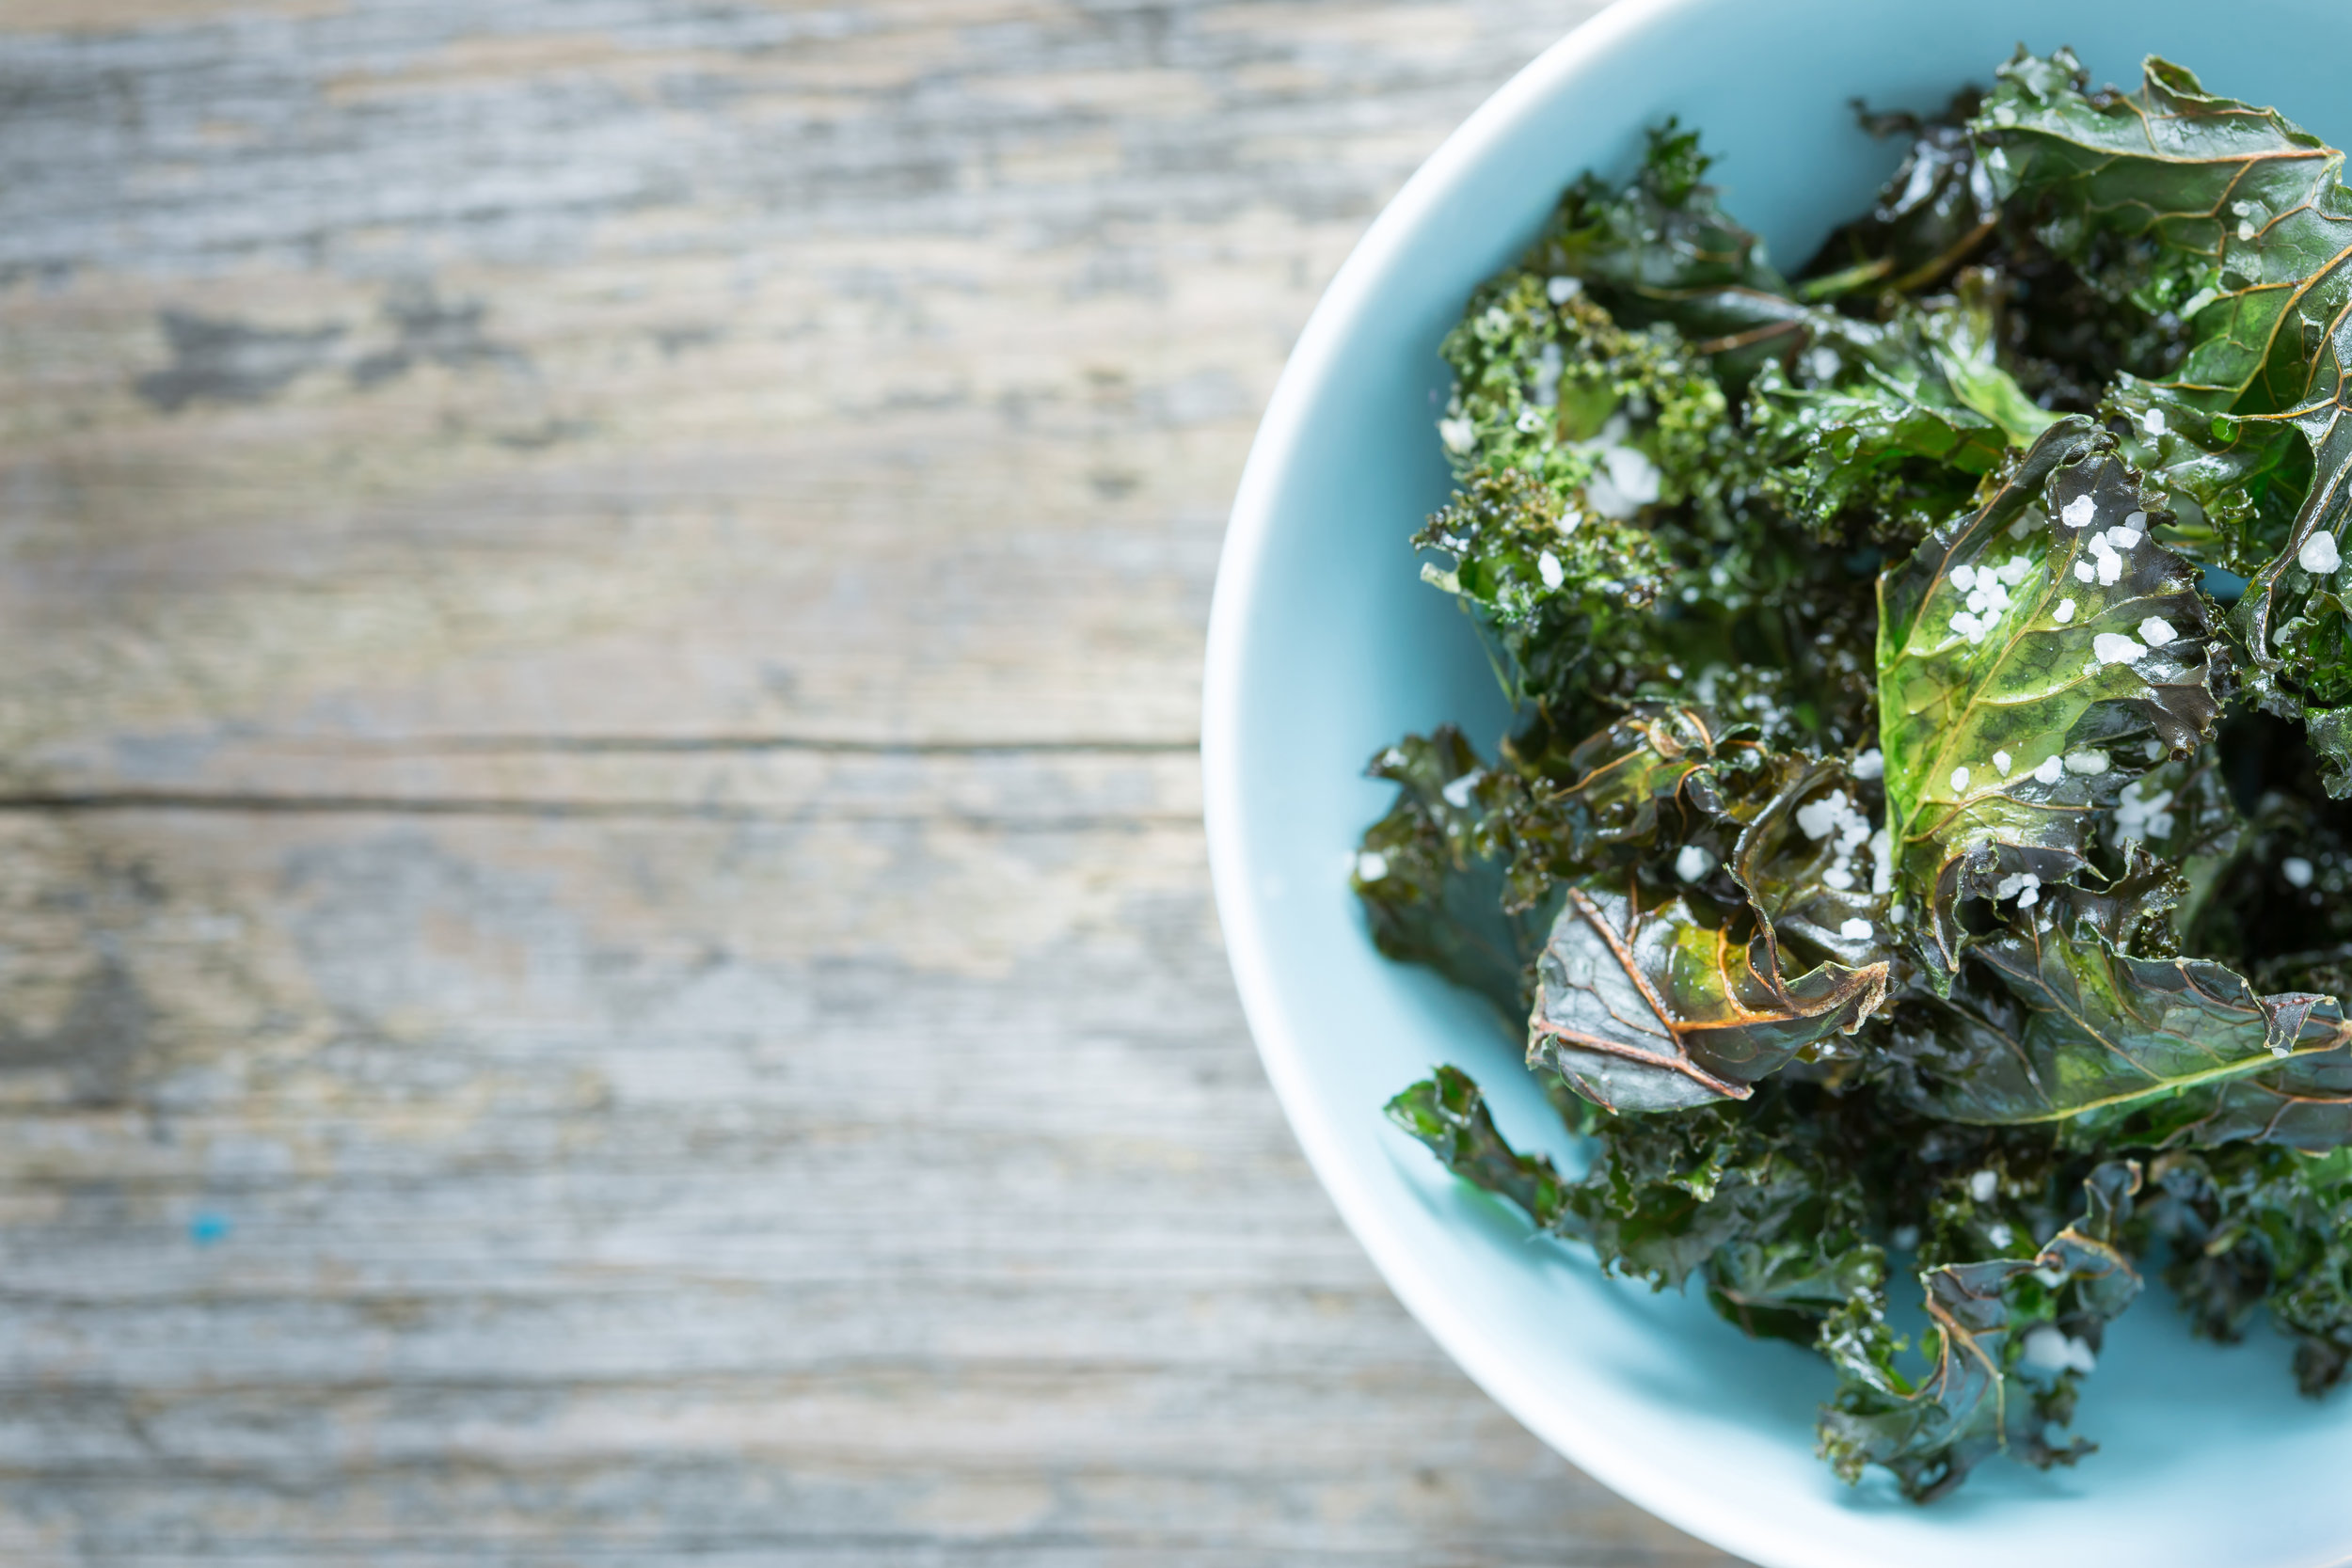 Crunch…Crunch…Just like Chips - Kale Chips (or for a more fun flavored twist, try this Spicy Kale Chip variety)